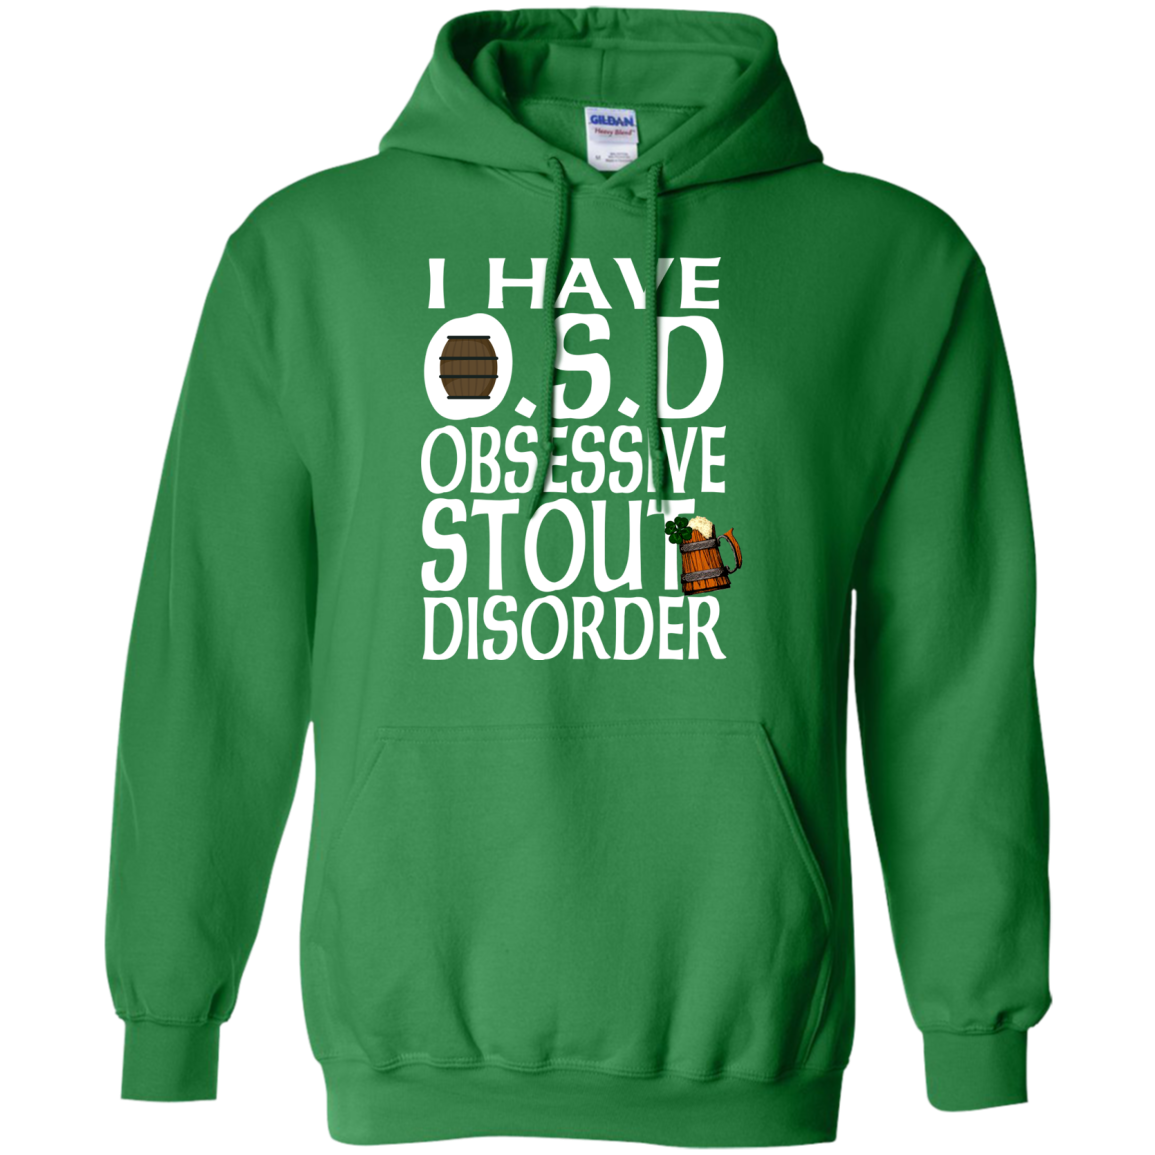 Irish Stout Irish Beer Obsessive Disorder St Patricks Day Clothing St Patrick's Day Shirts Hoodies For Women And Men - Blue Fox